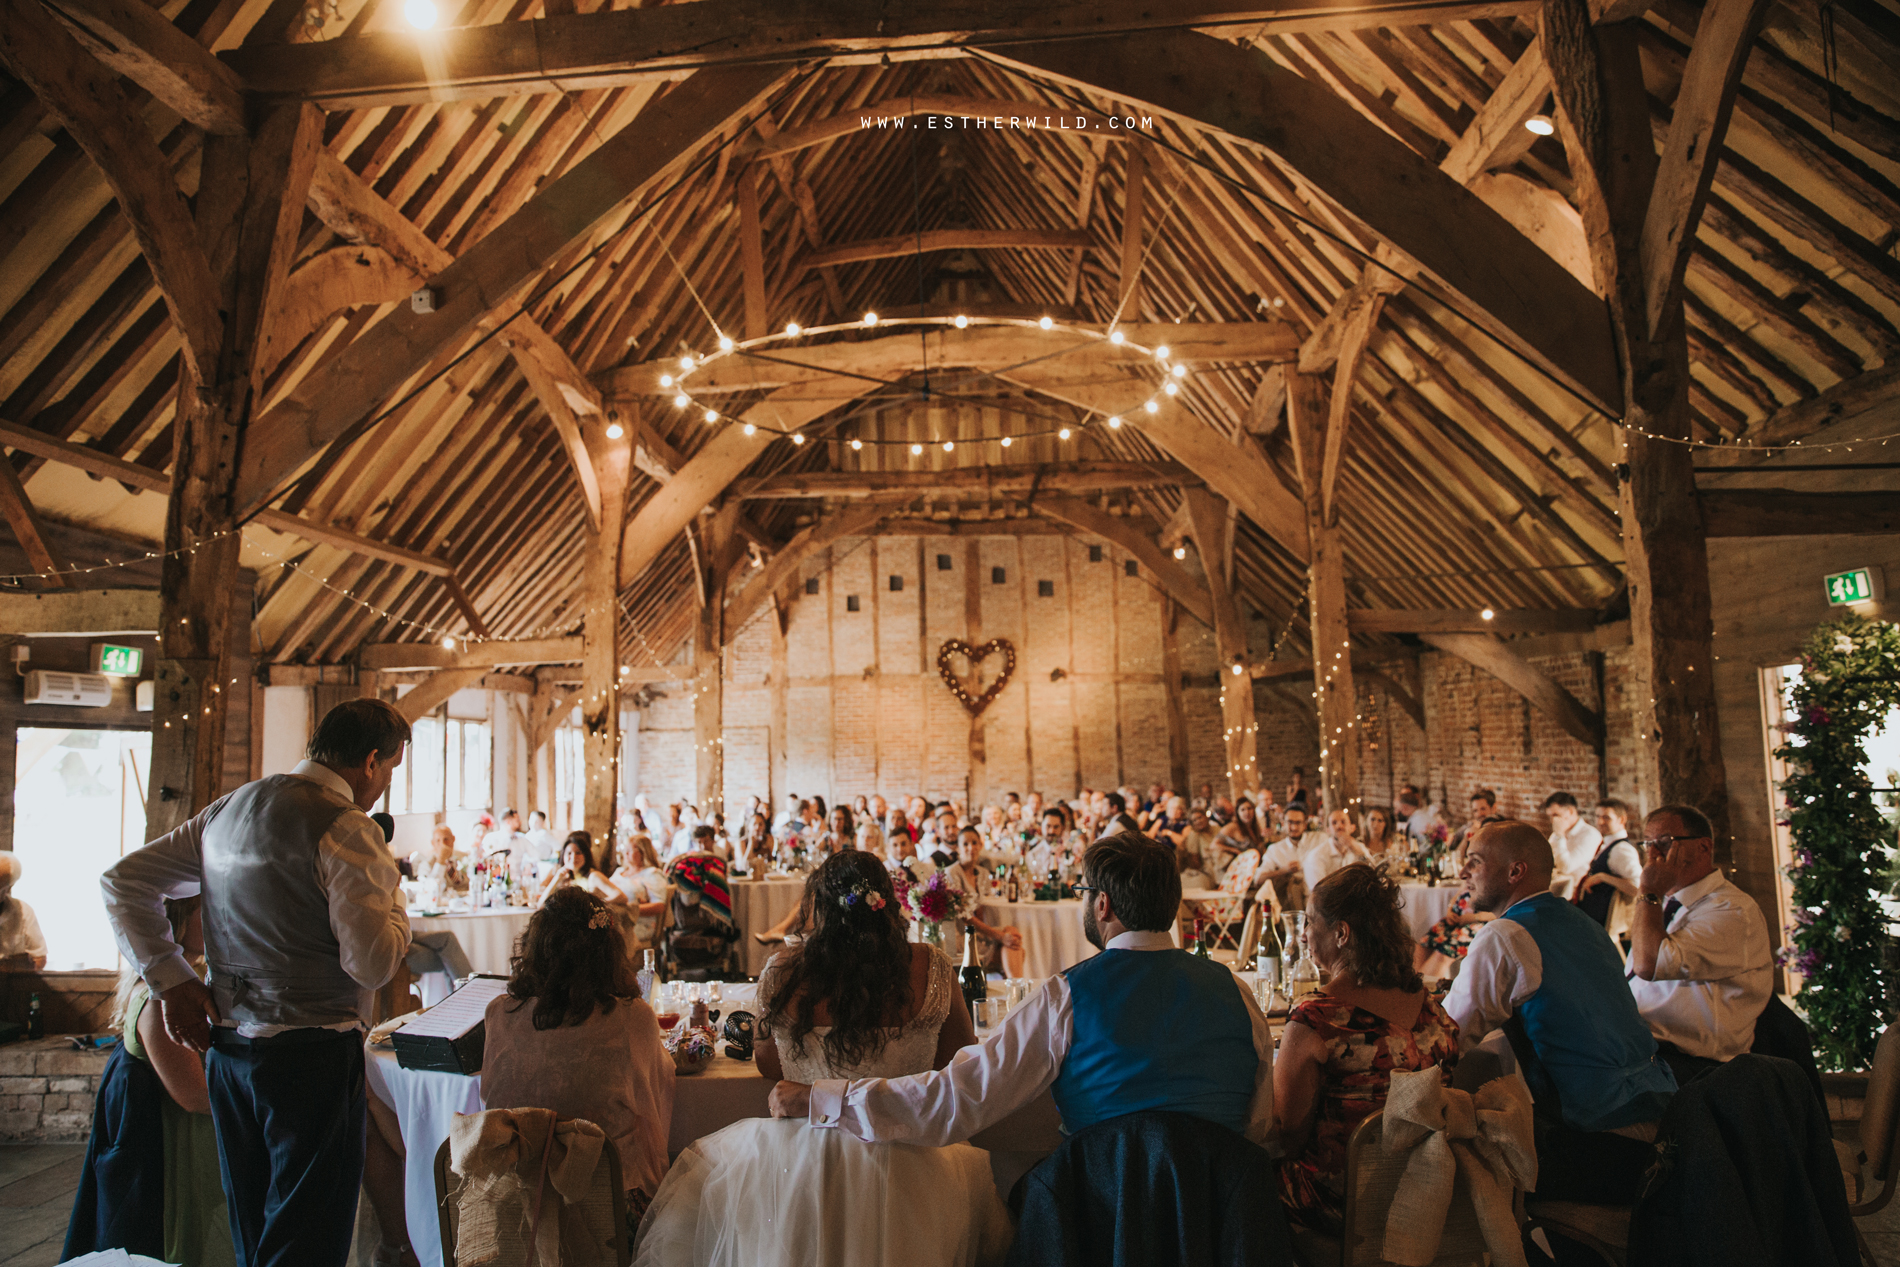 The_Red_Barn_Wedding_Kings_Lynn_Norfolk_IMG_1756.jpg